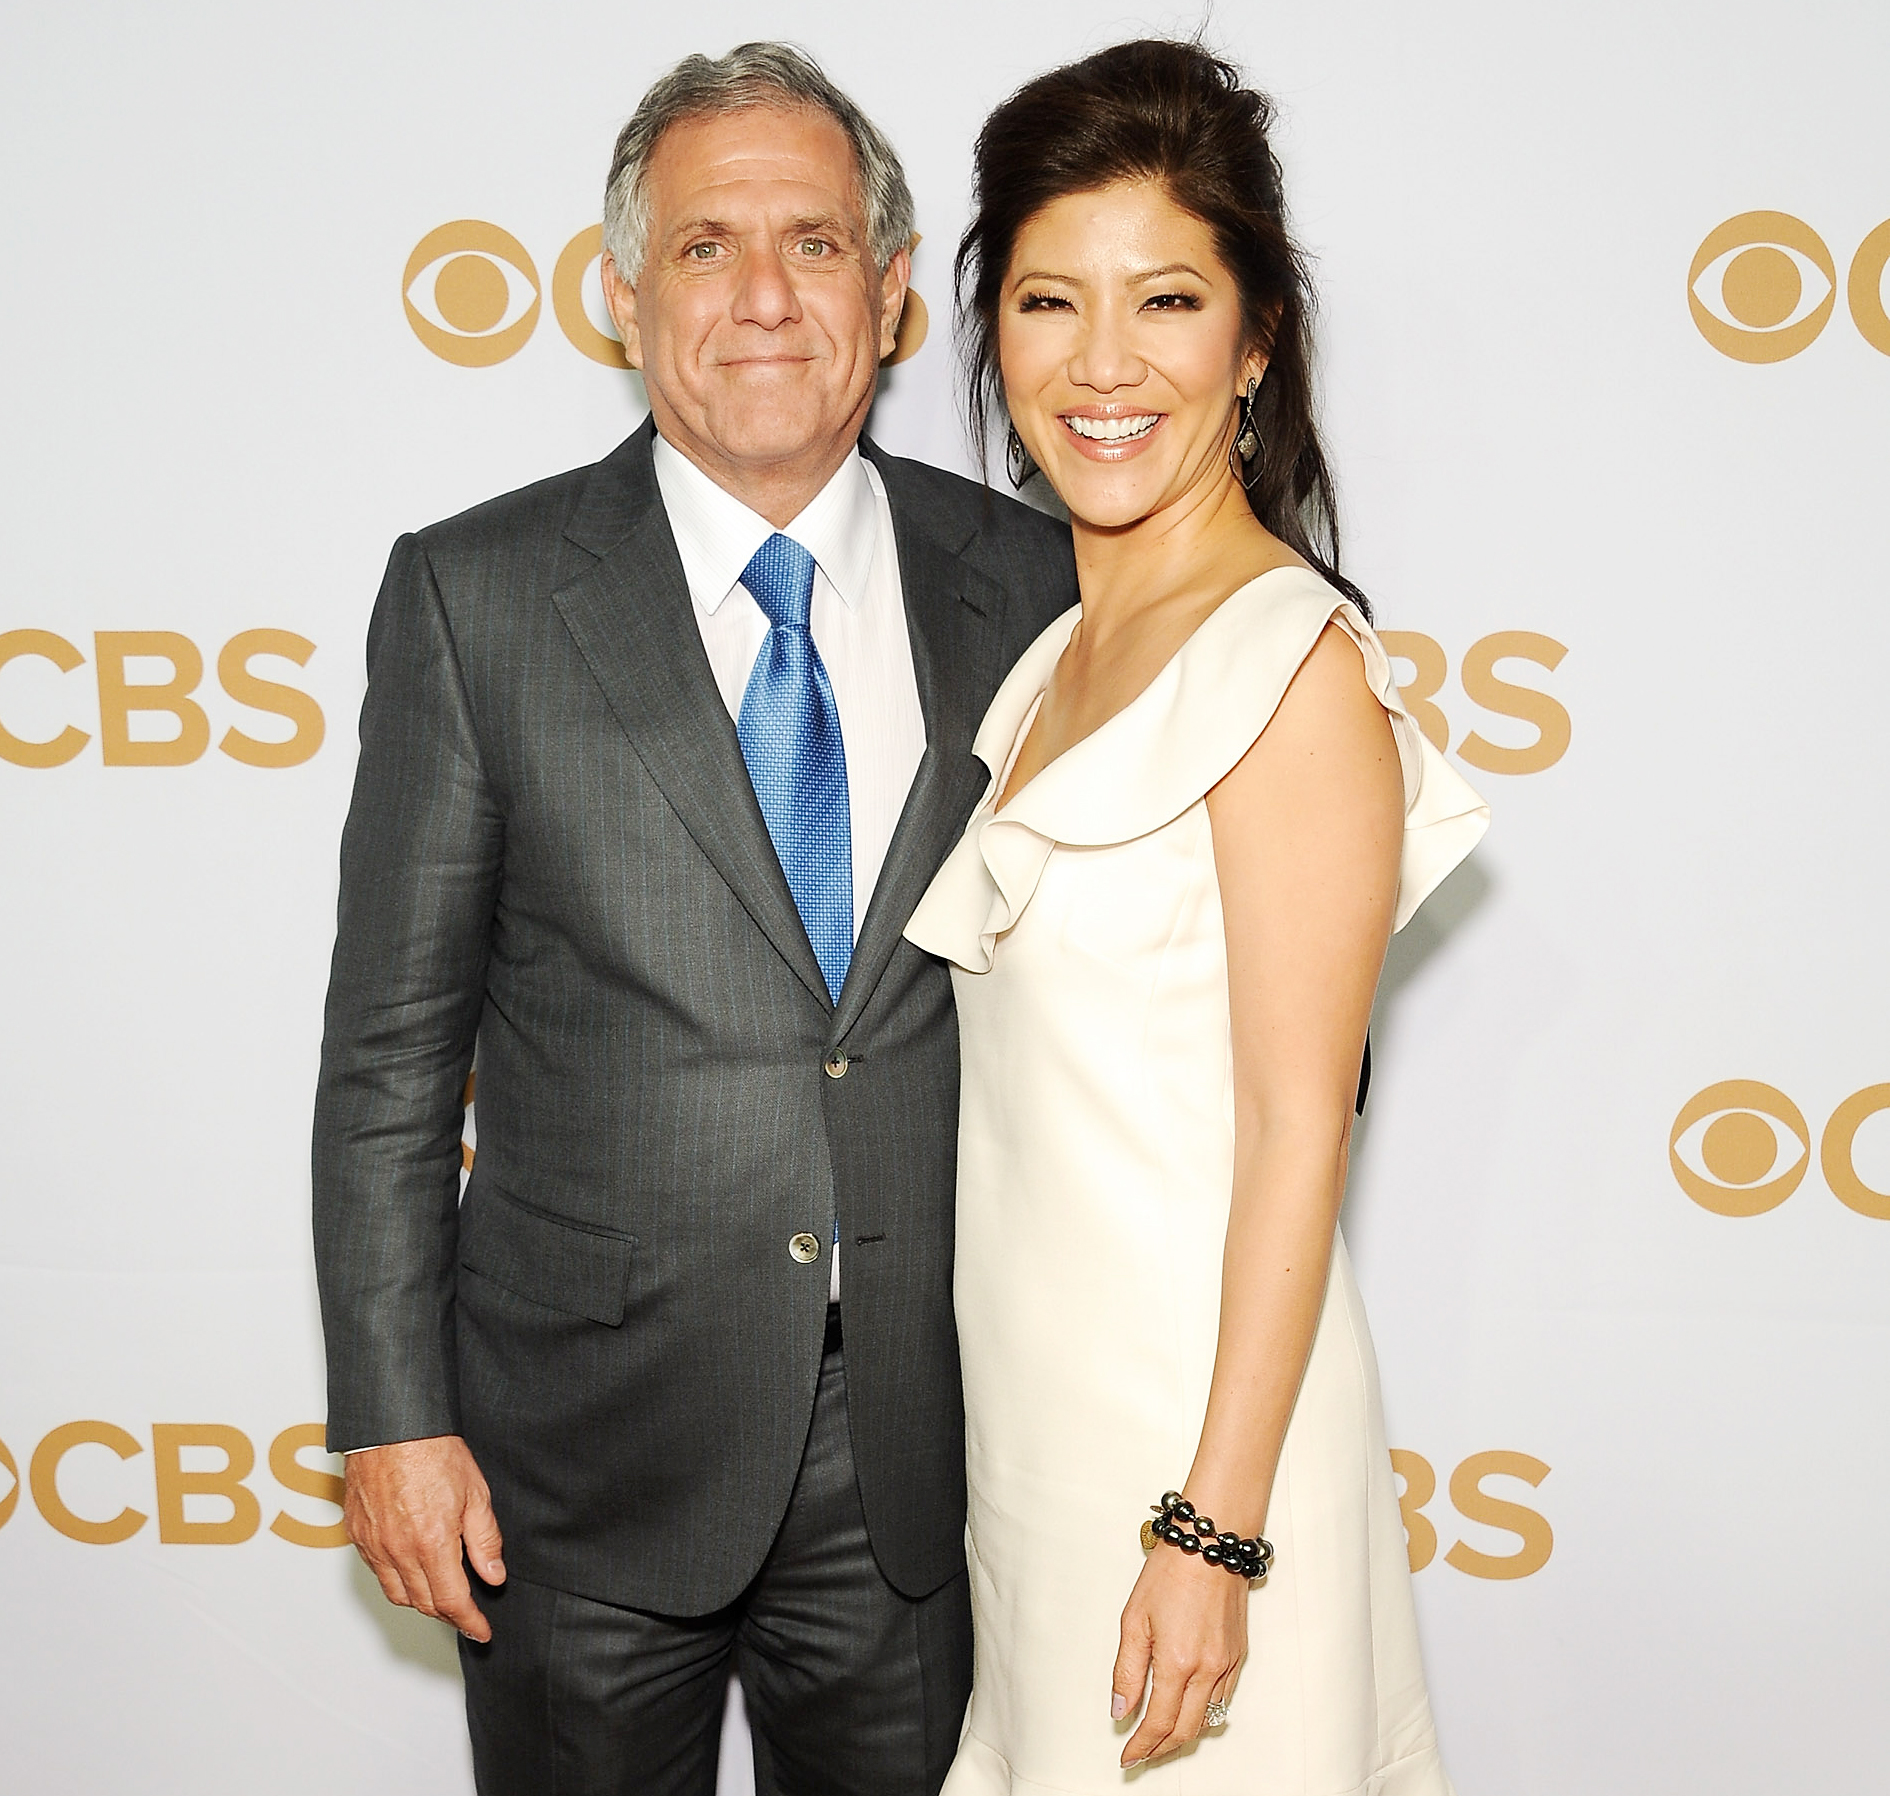 The View Hosts Compare Julie Chen Les Moonves Hillary Clinton Bill Clinton